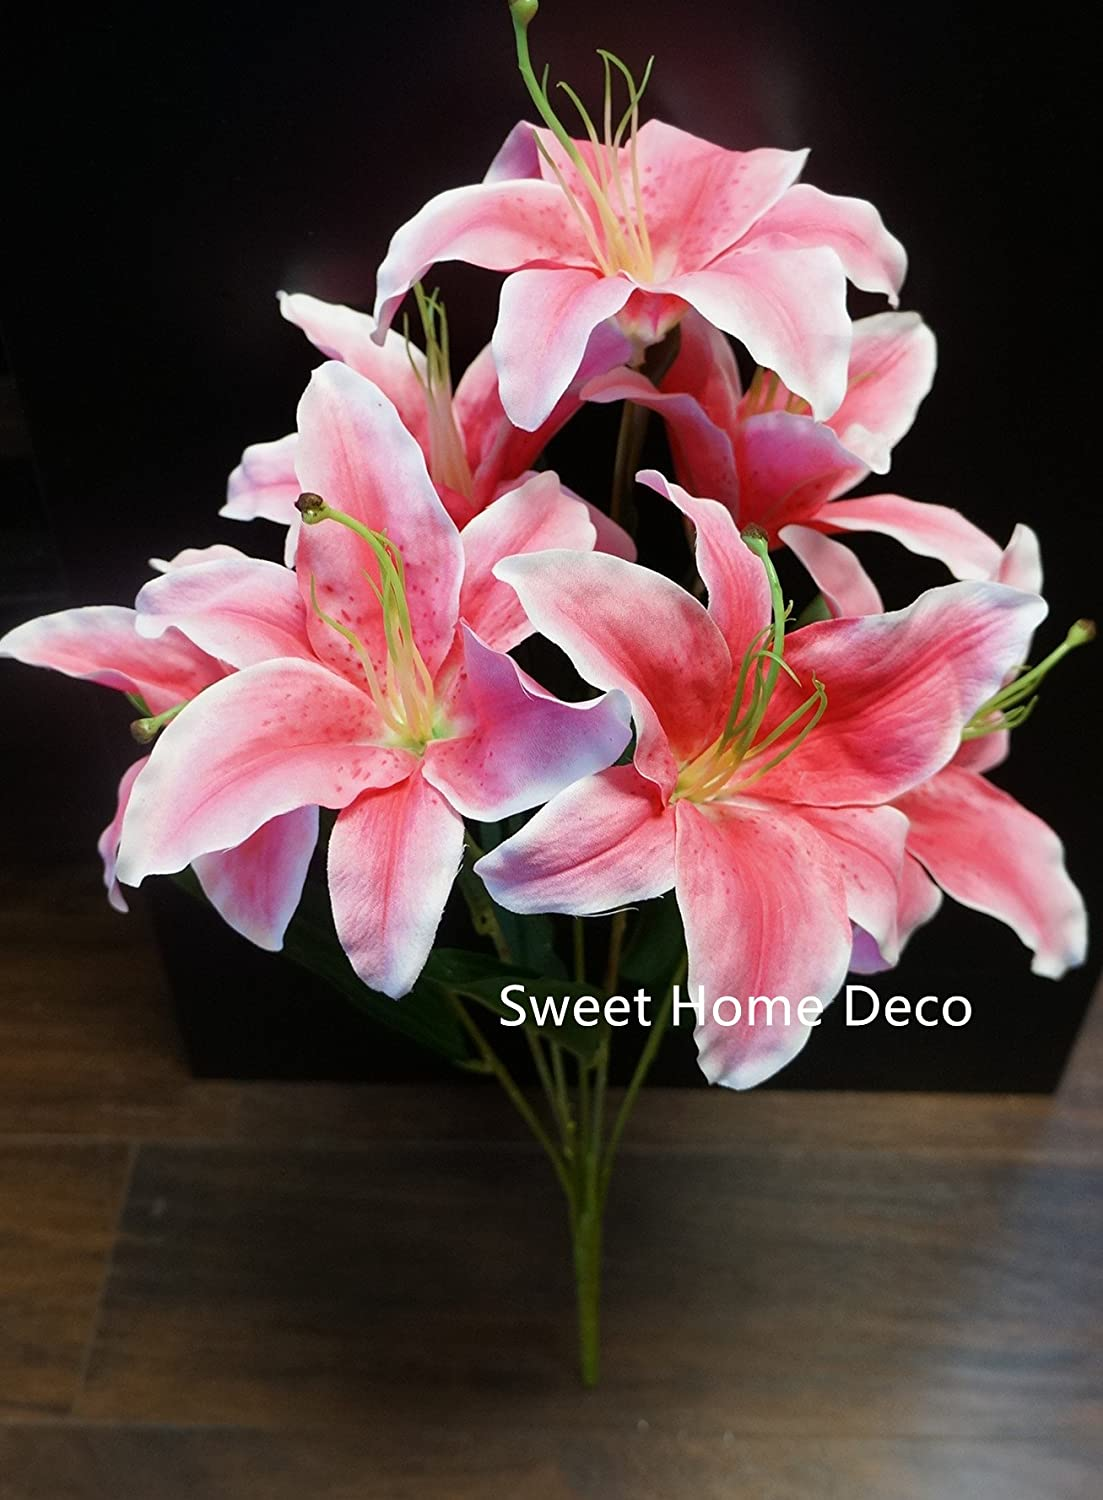 Amazon Sweet Home Deco 22 Silk Stargazer Lily Artificial